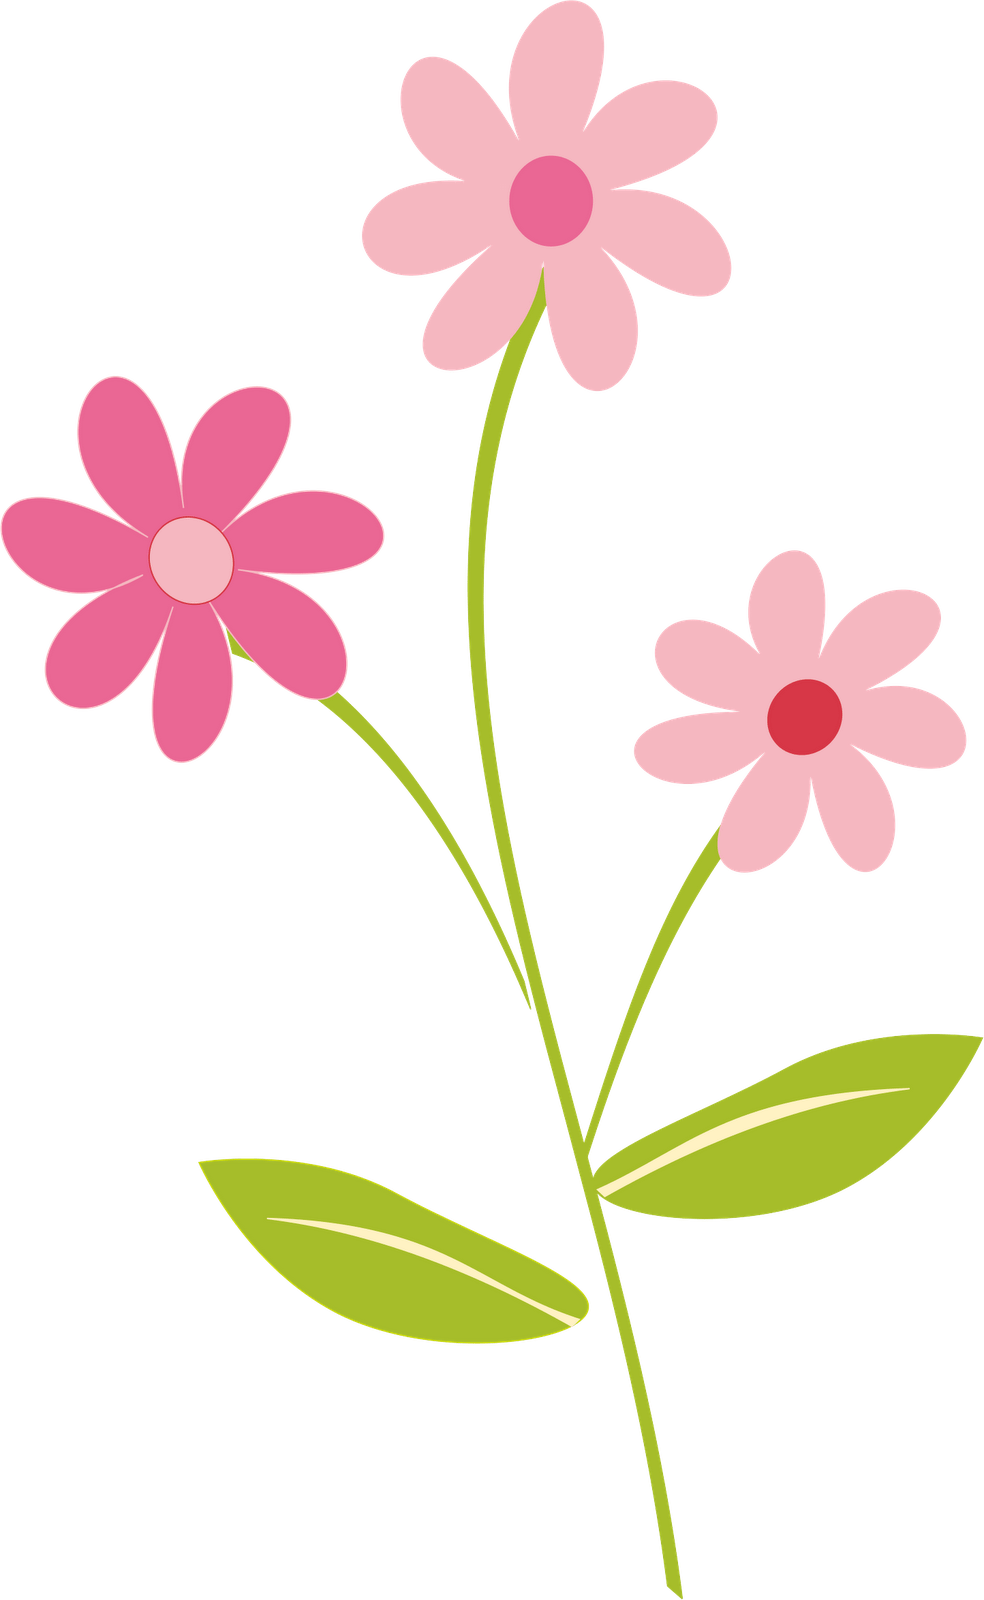 hight resolution of 984x1600 floral clipart cute